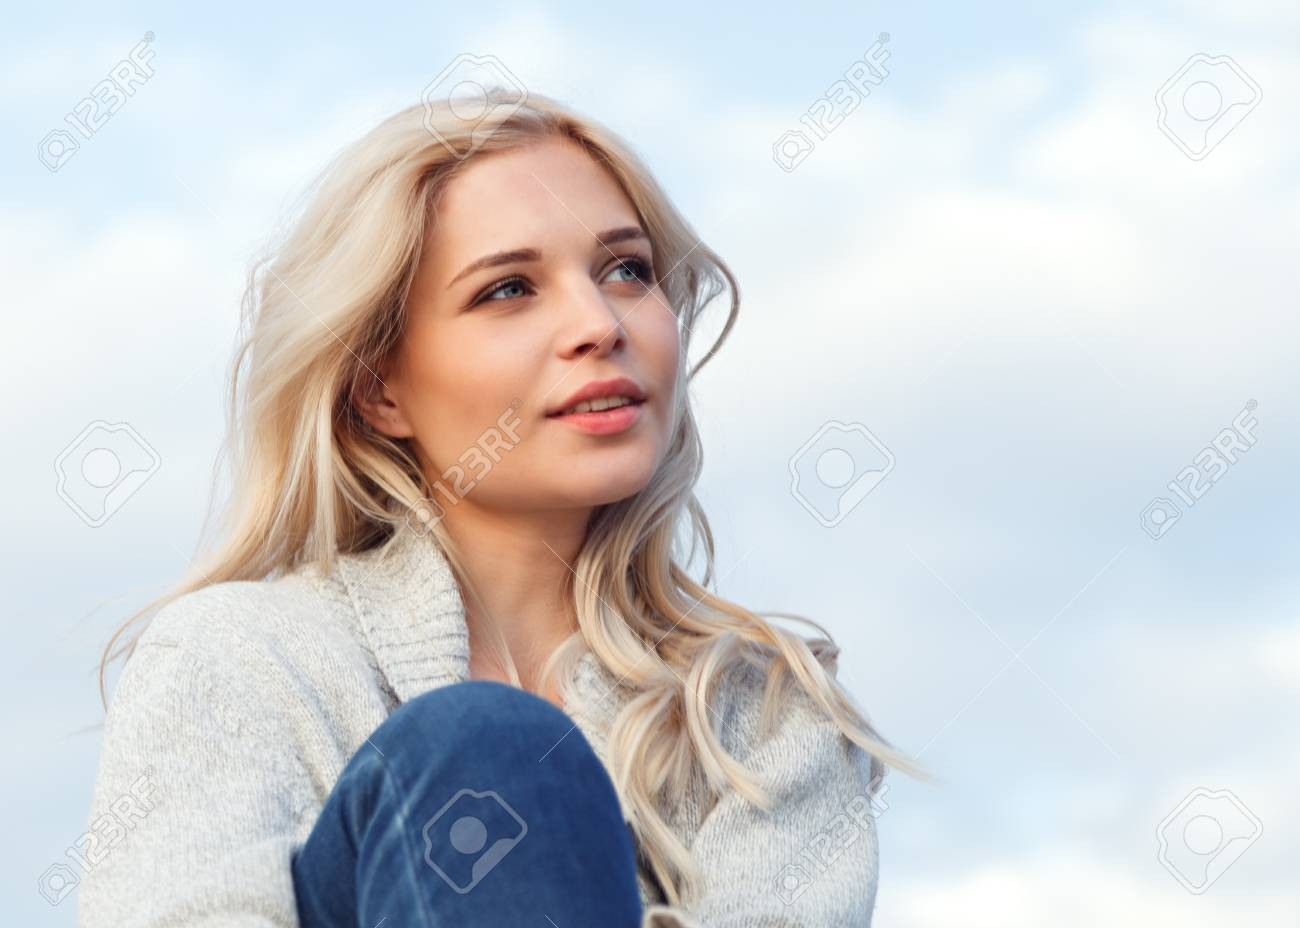 Beautiful happy blonde in a gray sweater and jeans smiling against the blue sky. Travel, leisure, tourism concept. - 125840183